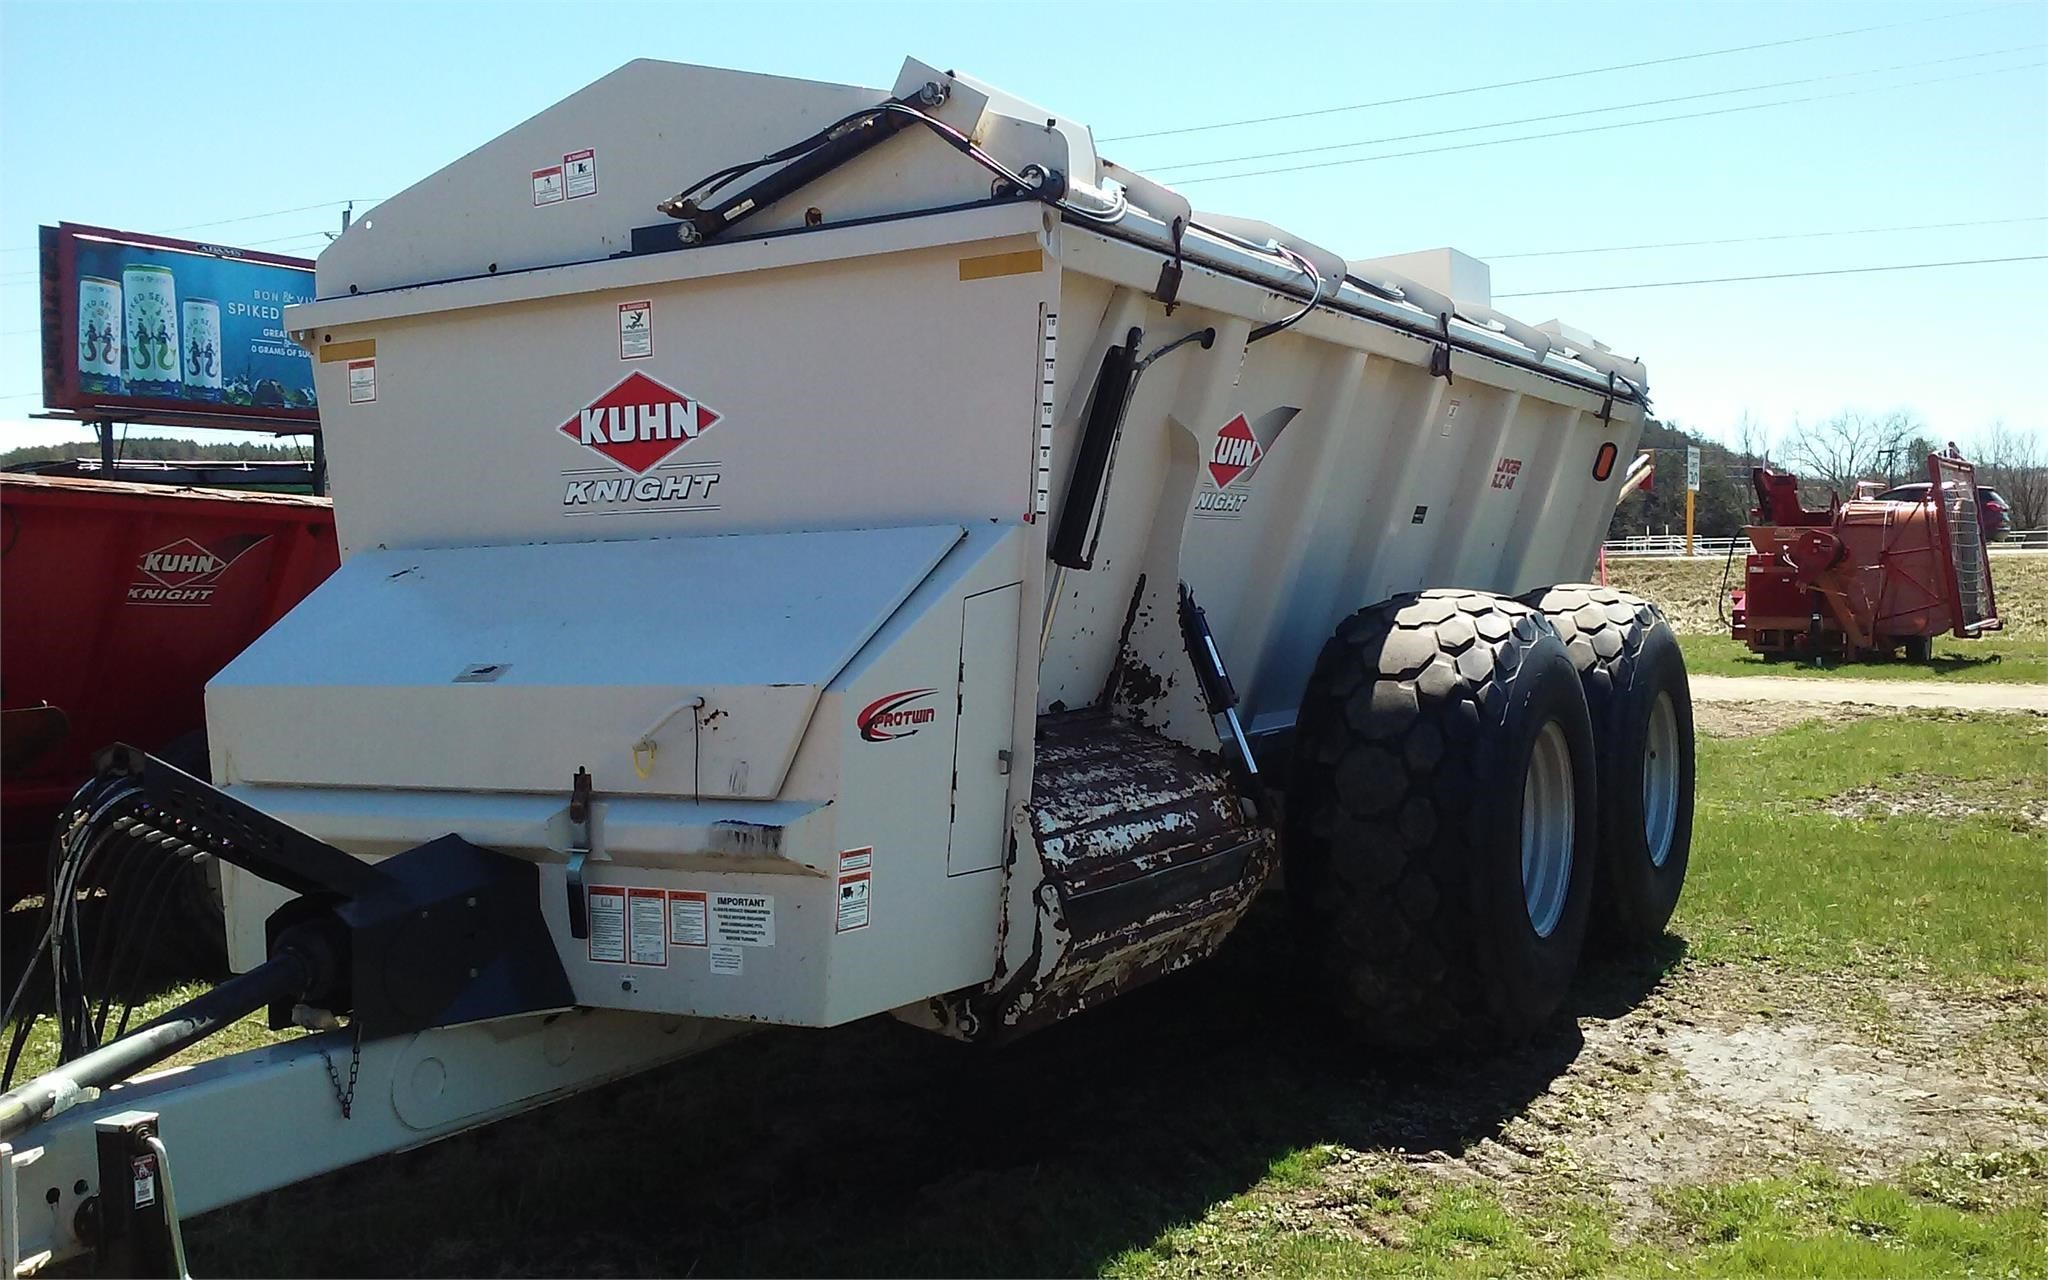 2017 Kuhn Knight SLC141 Manure Spreader